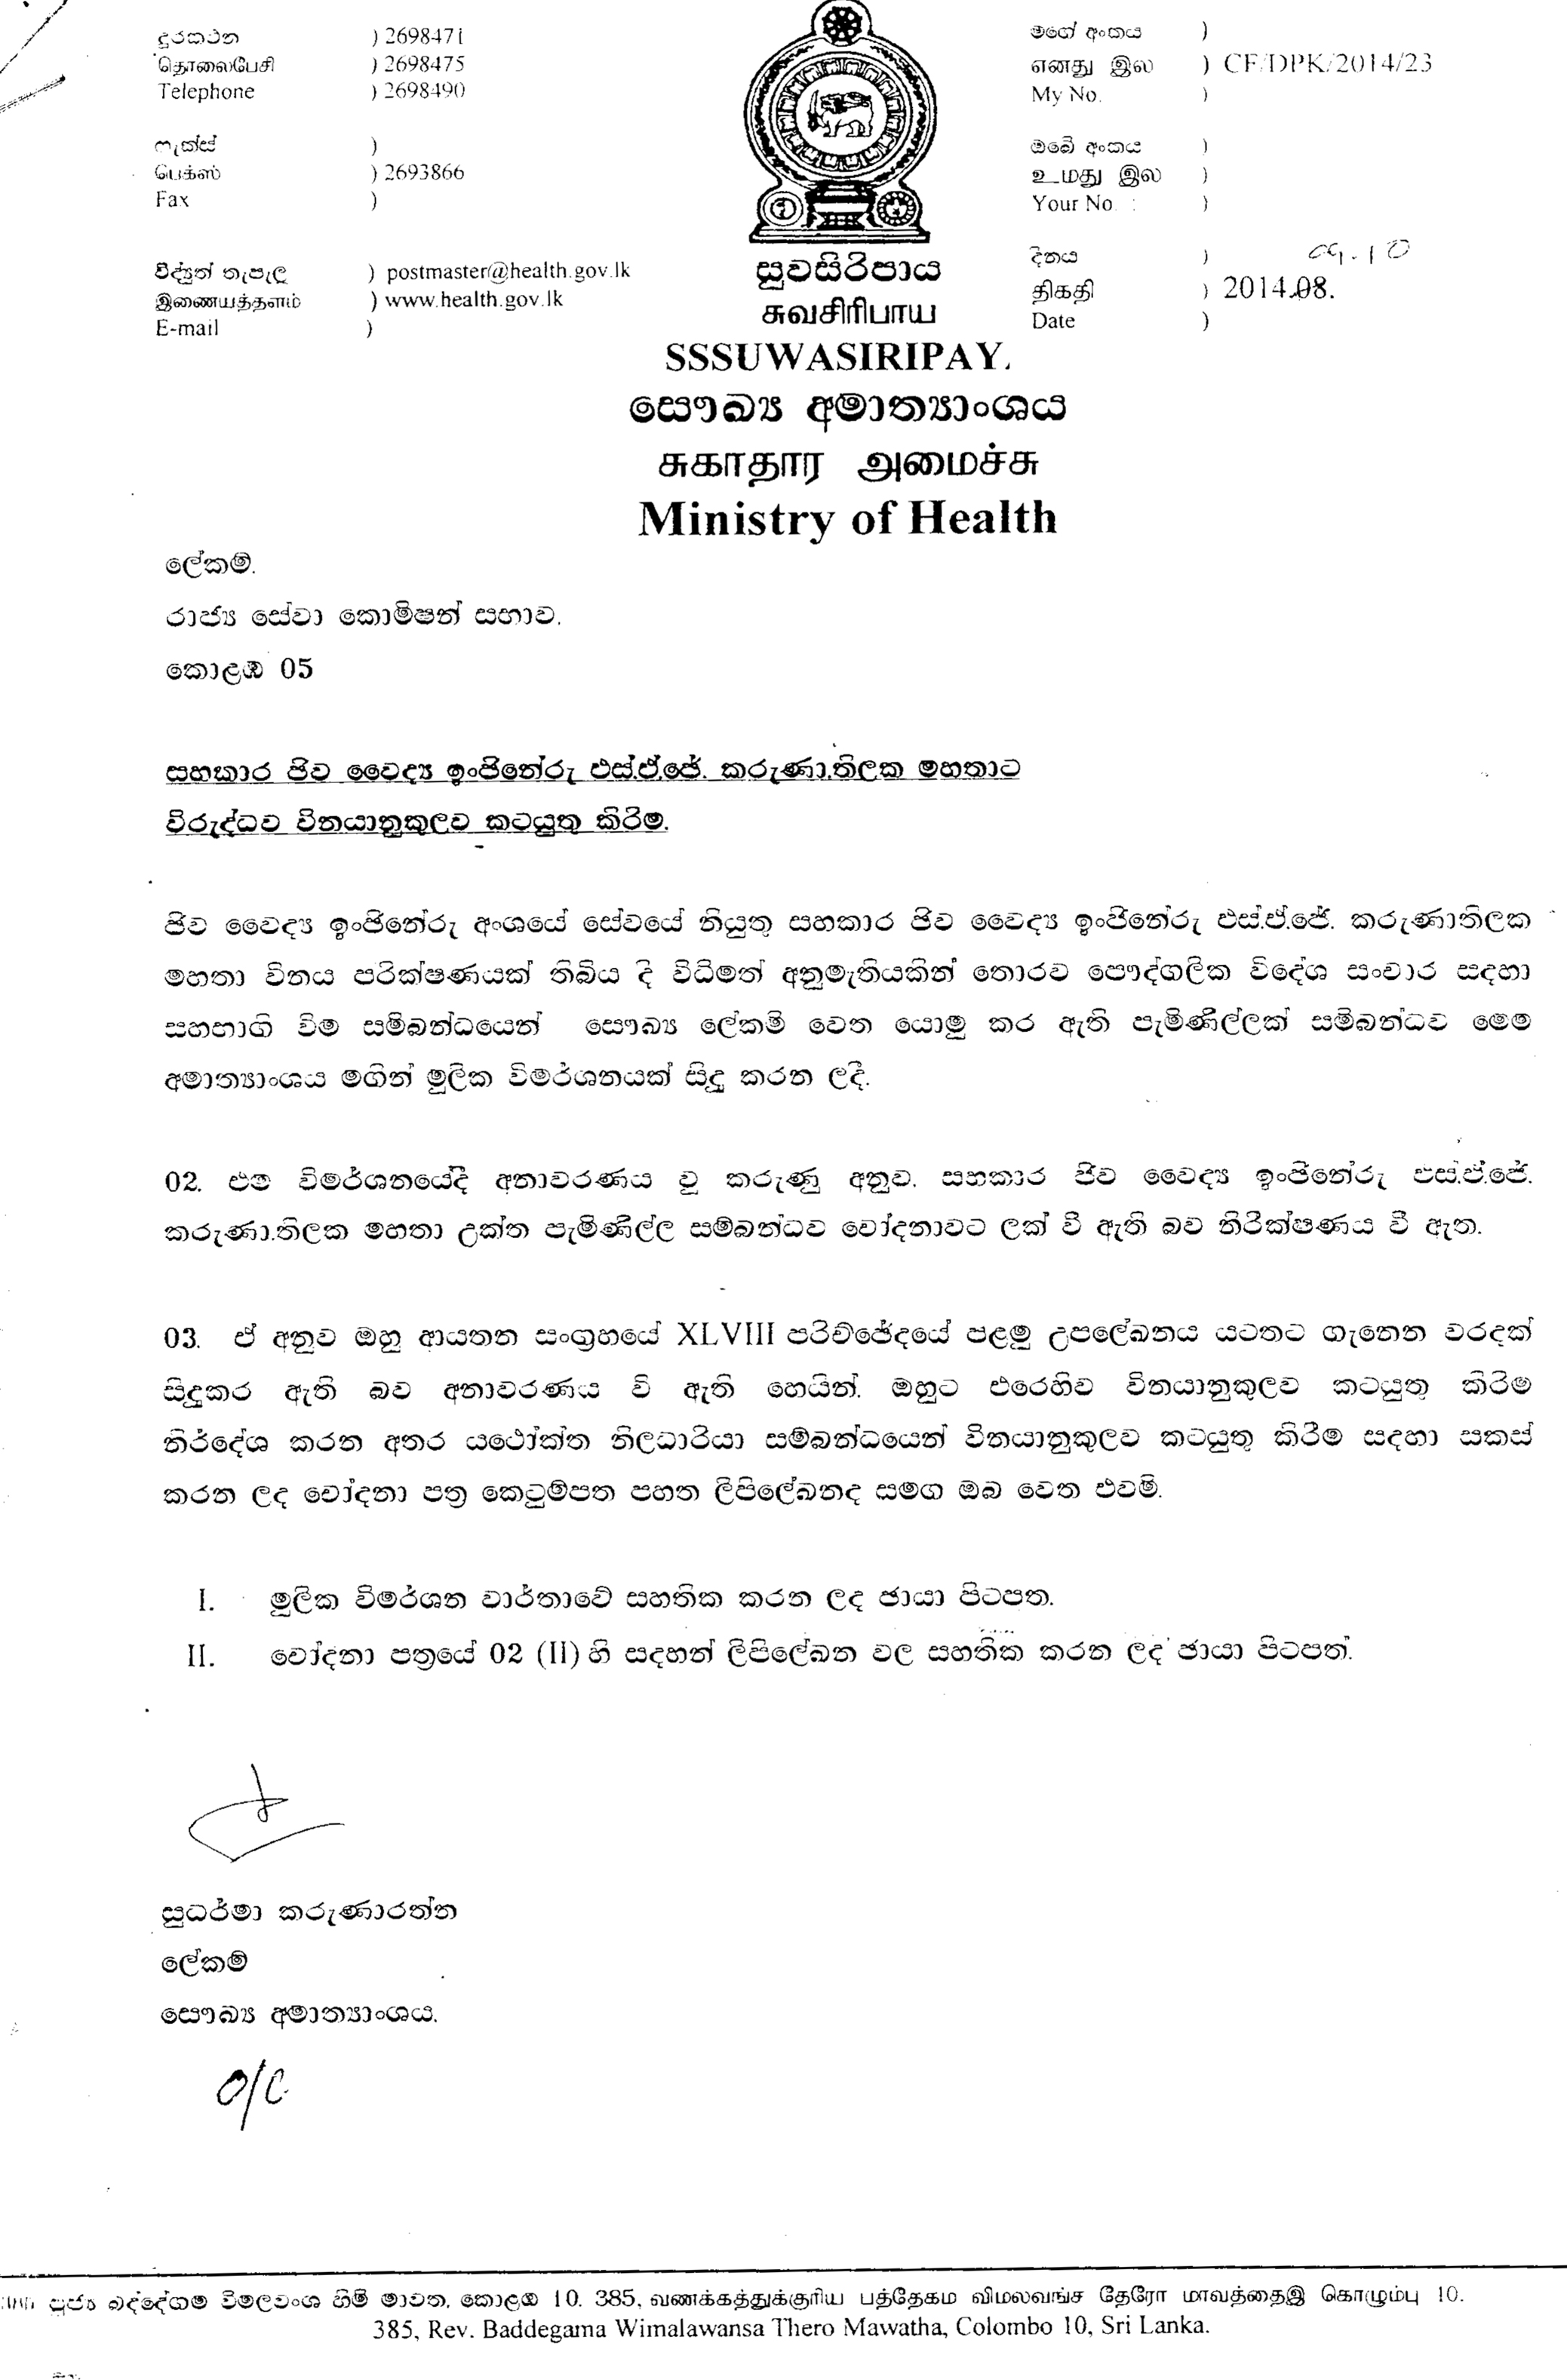 The technical specialist to sign off on the project was S.A.J. Karunatilaka, an engineer attached to the Health Ministry's Division of Biomedical Engineering Services based on de Saram Road, Colombo 10. Information now in the hands of Colombo Telegraph (see image 2) show that this individual had been caught red-handed, making as many as 15 secret, unauthorised overseas trips over the past several years.